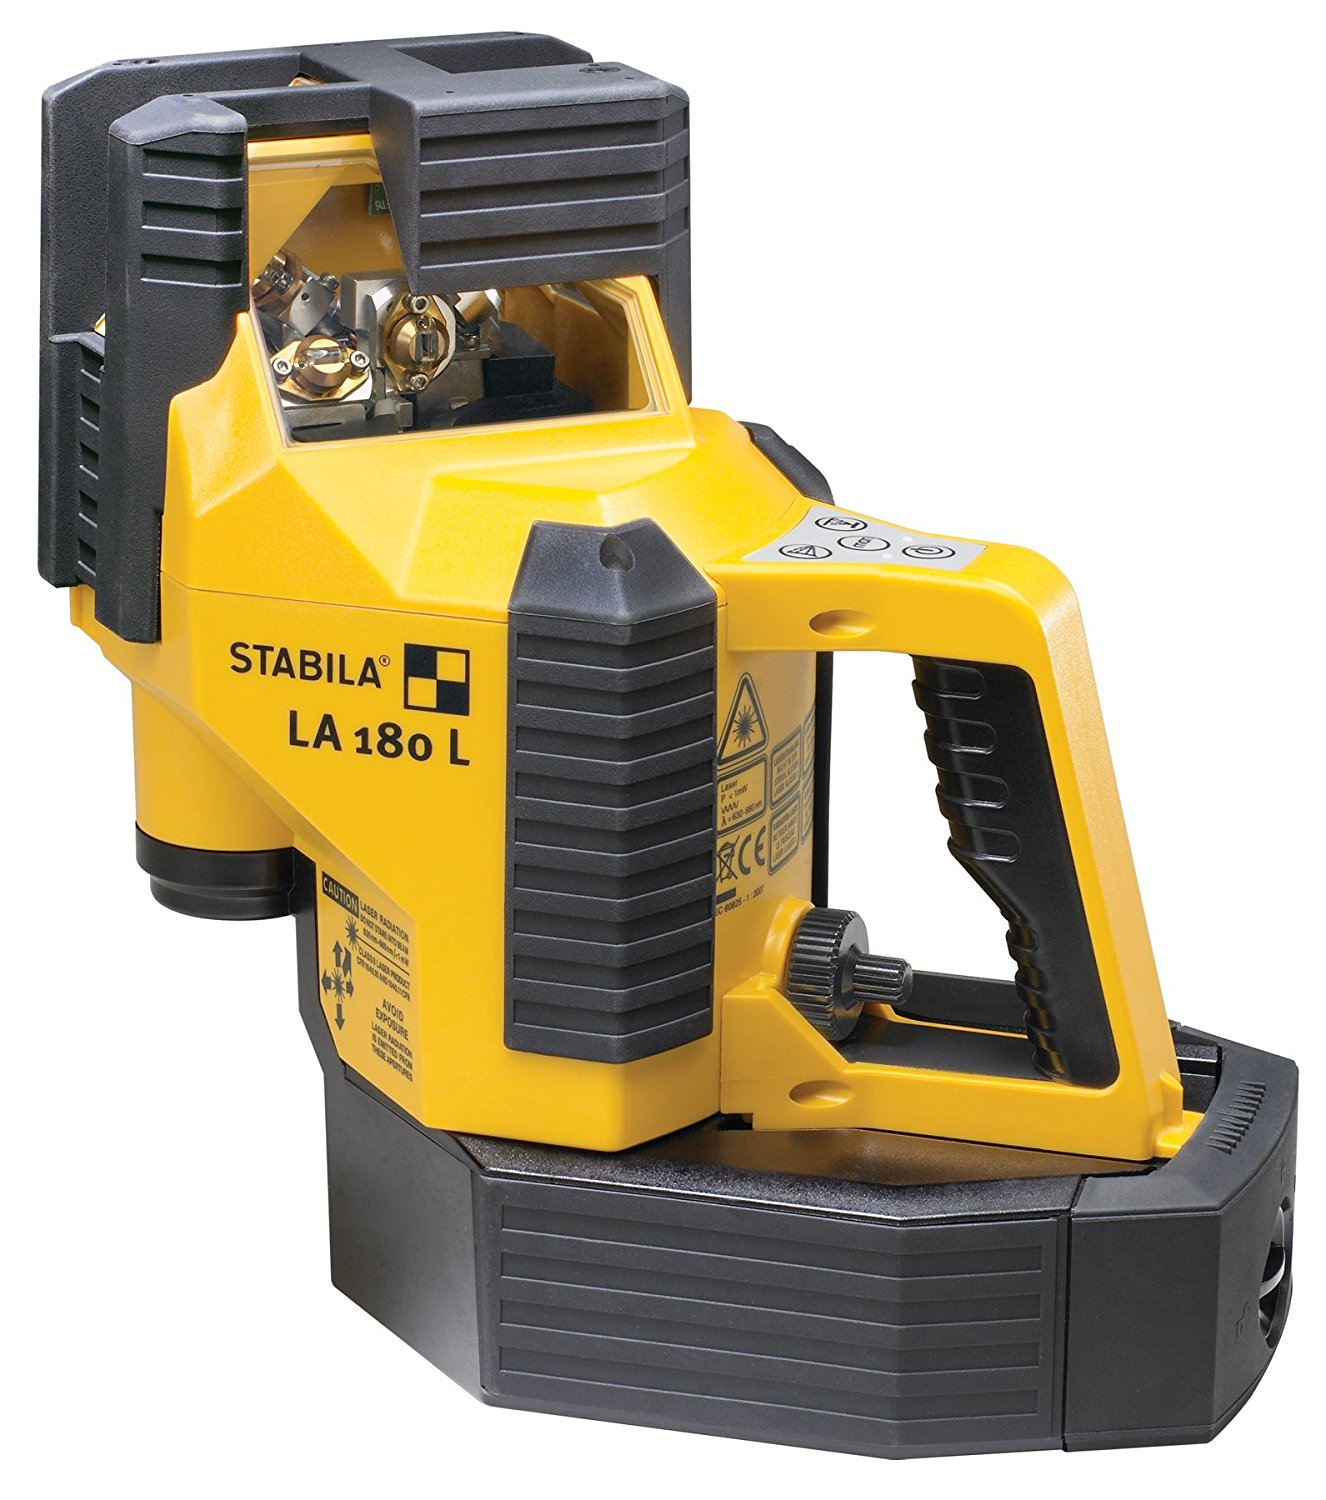 Stabila 02180 LA180L Layout Station with Auto Alignment by Stabila